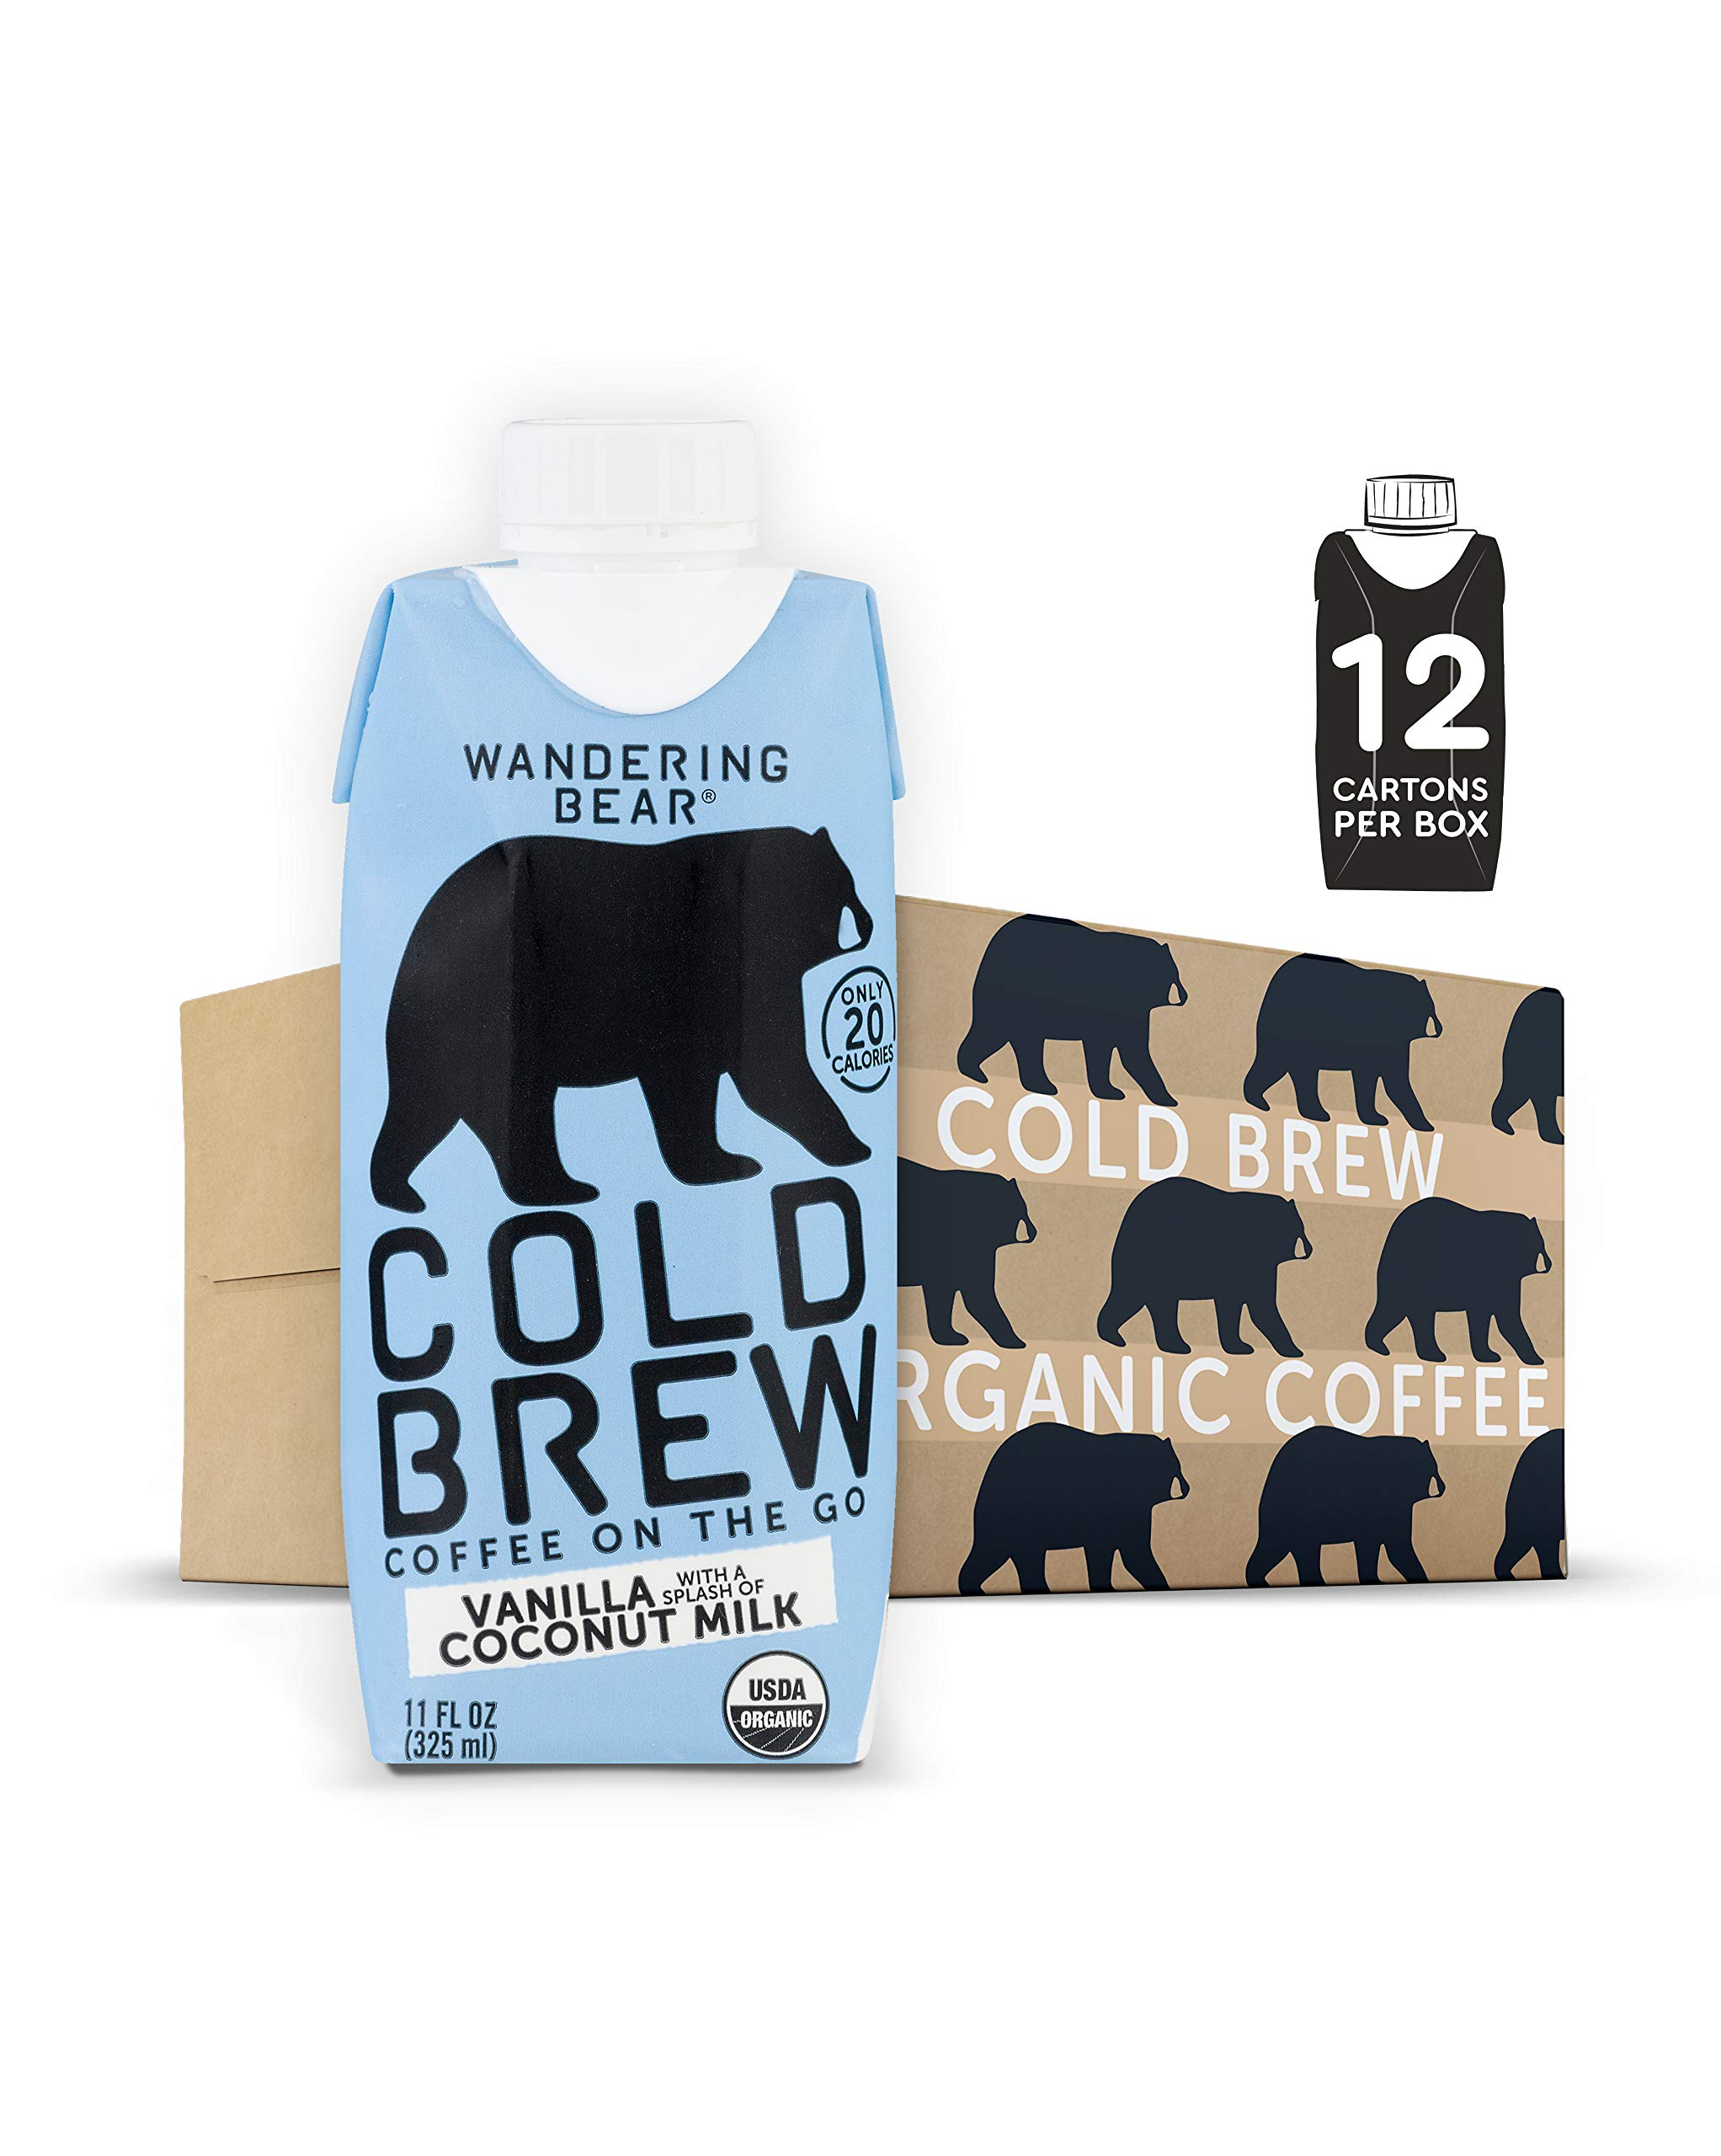 Wandering Bear Organic Cold Brew Coffee On-the-Go 11 oz Carton, Vanilla w/ Splash of Coconut Milk, No Sugar, Ready to Drink, Not a Concentrate (Pack of 12) by Wandering Bear